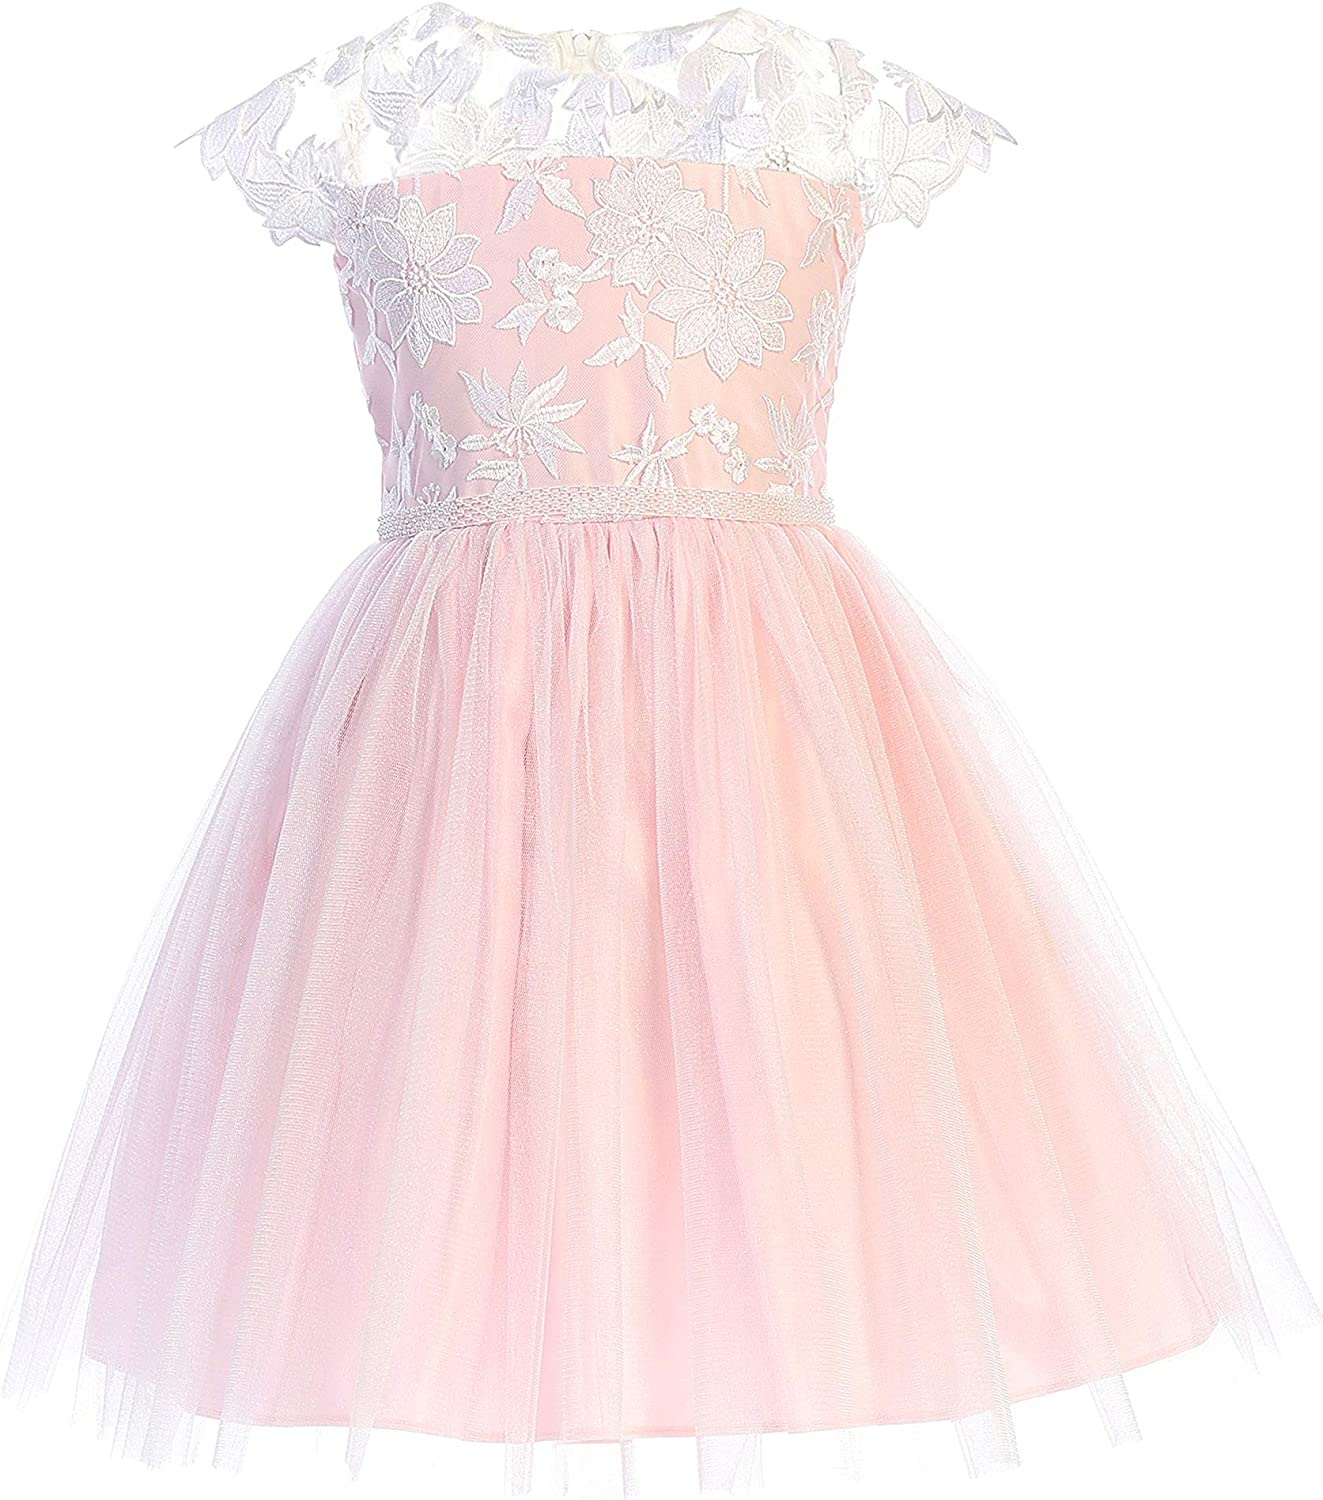 Sweet Kids Girls' Floral Embroidered Lace with Crystal Tulle Dress